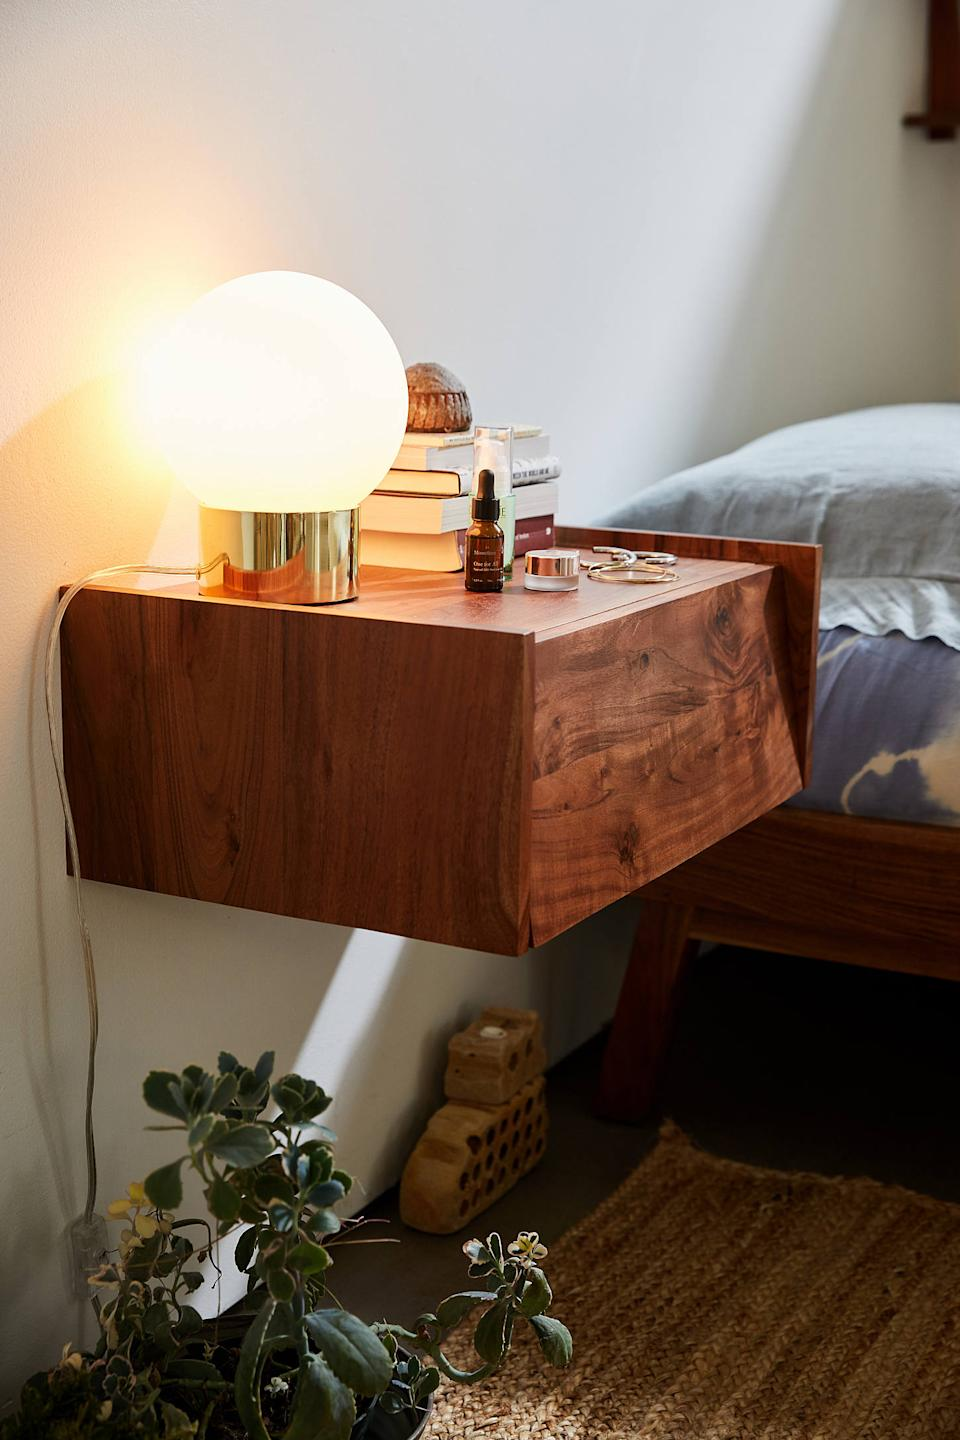 "For your bedroom, a modern floating nightstand can double as an office desk.<br><br><strong><em><a href=""https://www.urbanoutfitters.com/furniture"" rel=""nofollow noopener"" target=""_blank"" data-ylk=""slk:Shop Urban Outfitters"" class=""link rapid-noclick-resp"">Shop Urban Outfitters</a></em></strong><br><br><strong>Urban Outfitters</strong> Akina Floating Nightstand, $, available at <a href=""https://go.skimresources.com/?id=30283X879131&url=https%3A%2F%2Fwww.urbanoutfitters.com%2Fshop%2Fakina-floating-nightstand%3F"" rel=""nofollow noopener"" target=""_blank"" data-ylk=""slk:Urban Outfitters"" class=""link rapid-noclick-resp"">Urban Outfitters</a>"